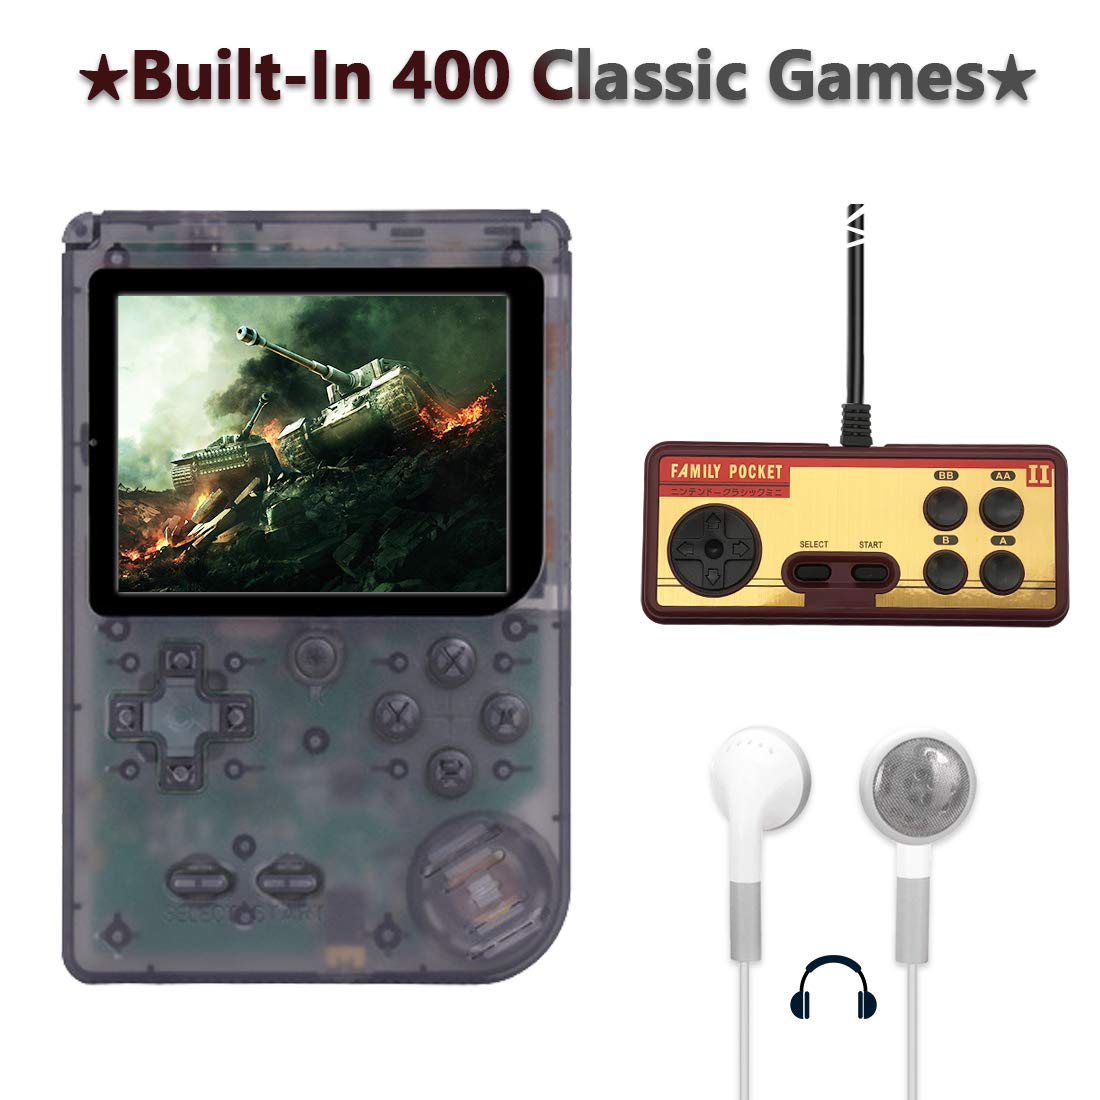 AKTOUGST Handheld Game Console, Retro Game Console 400 Classic Game FC System Video 3 Inch with Headphone Portable Mini Extra Controller Support TV 2 Player,Gift for Child Adult, (Transparent Black)